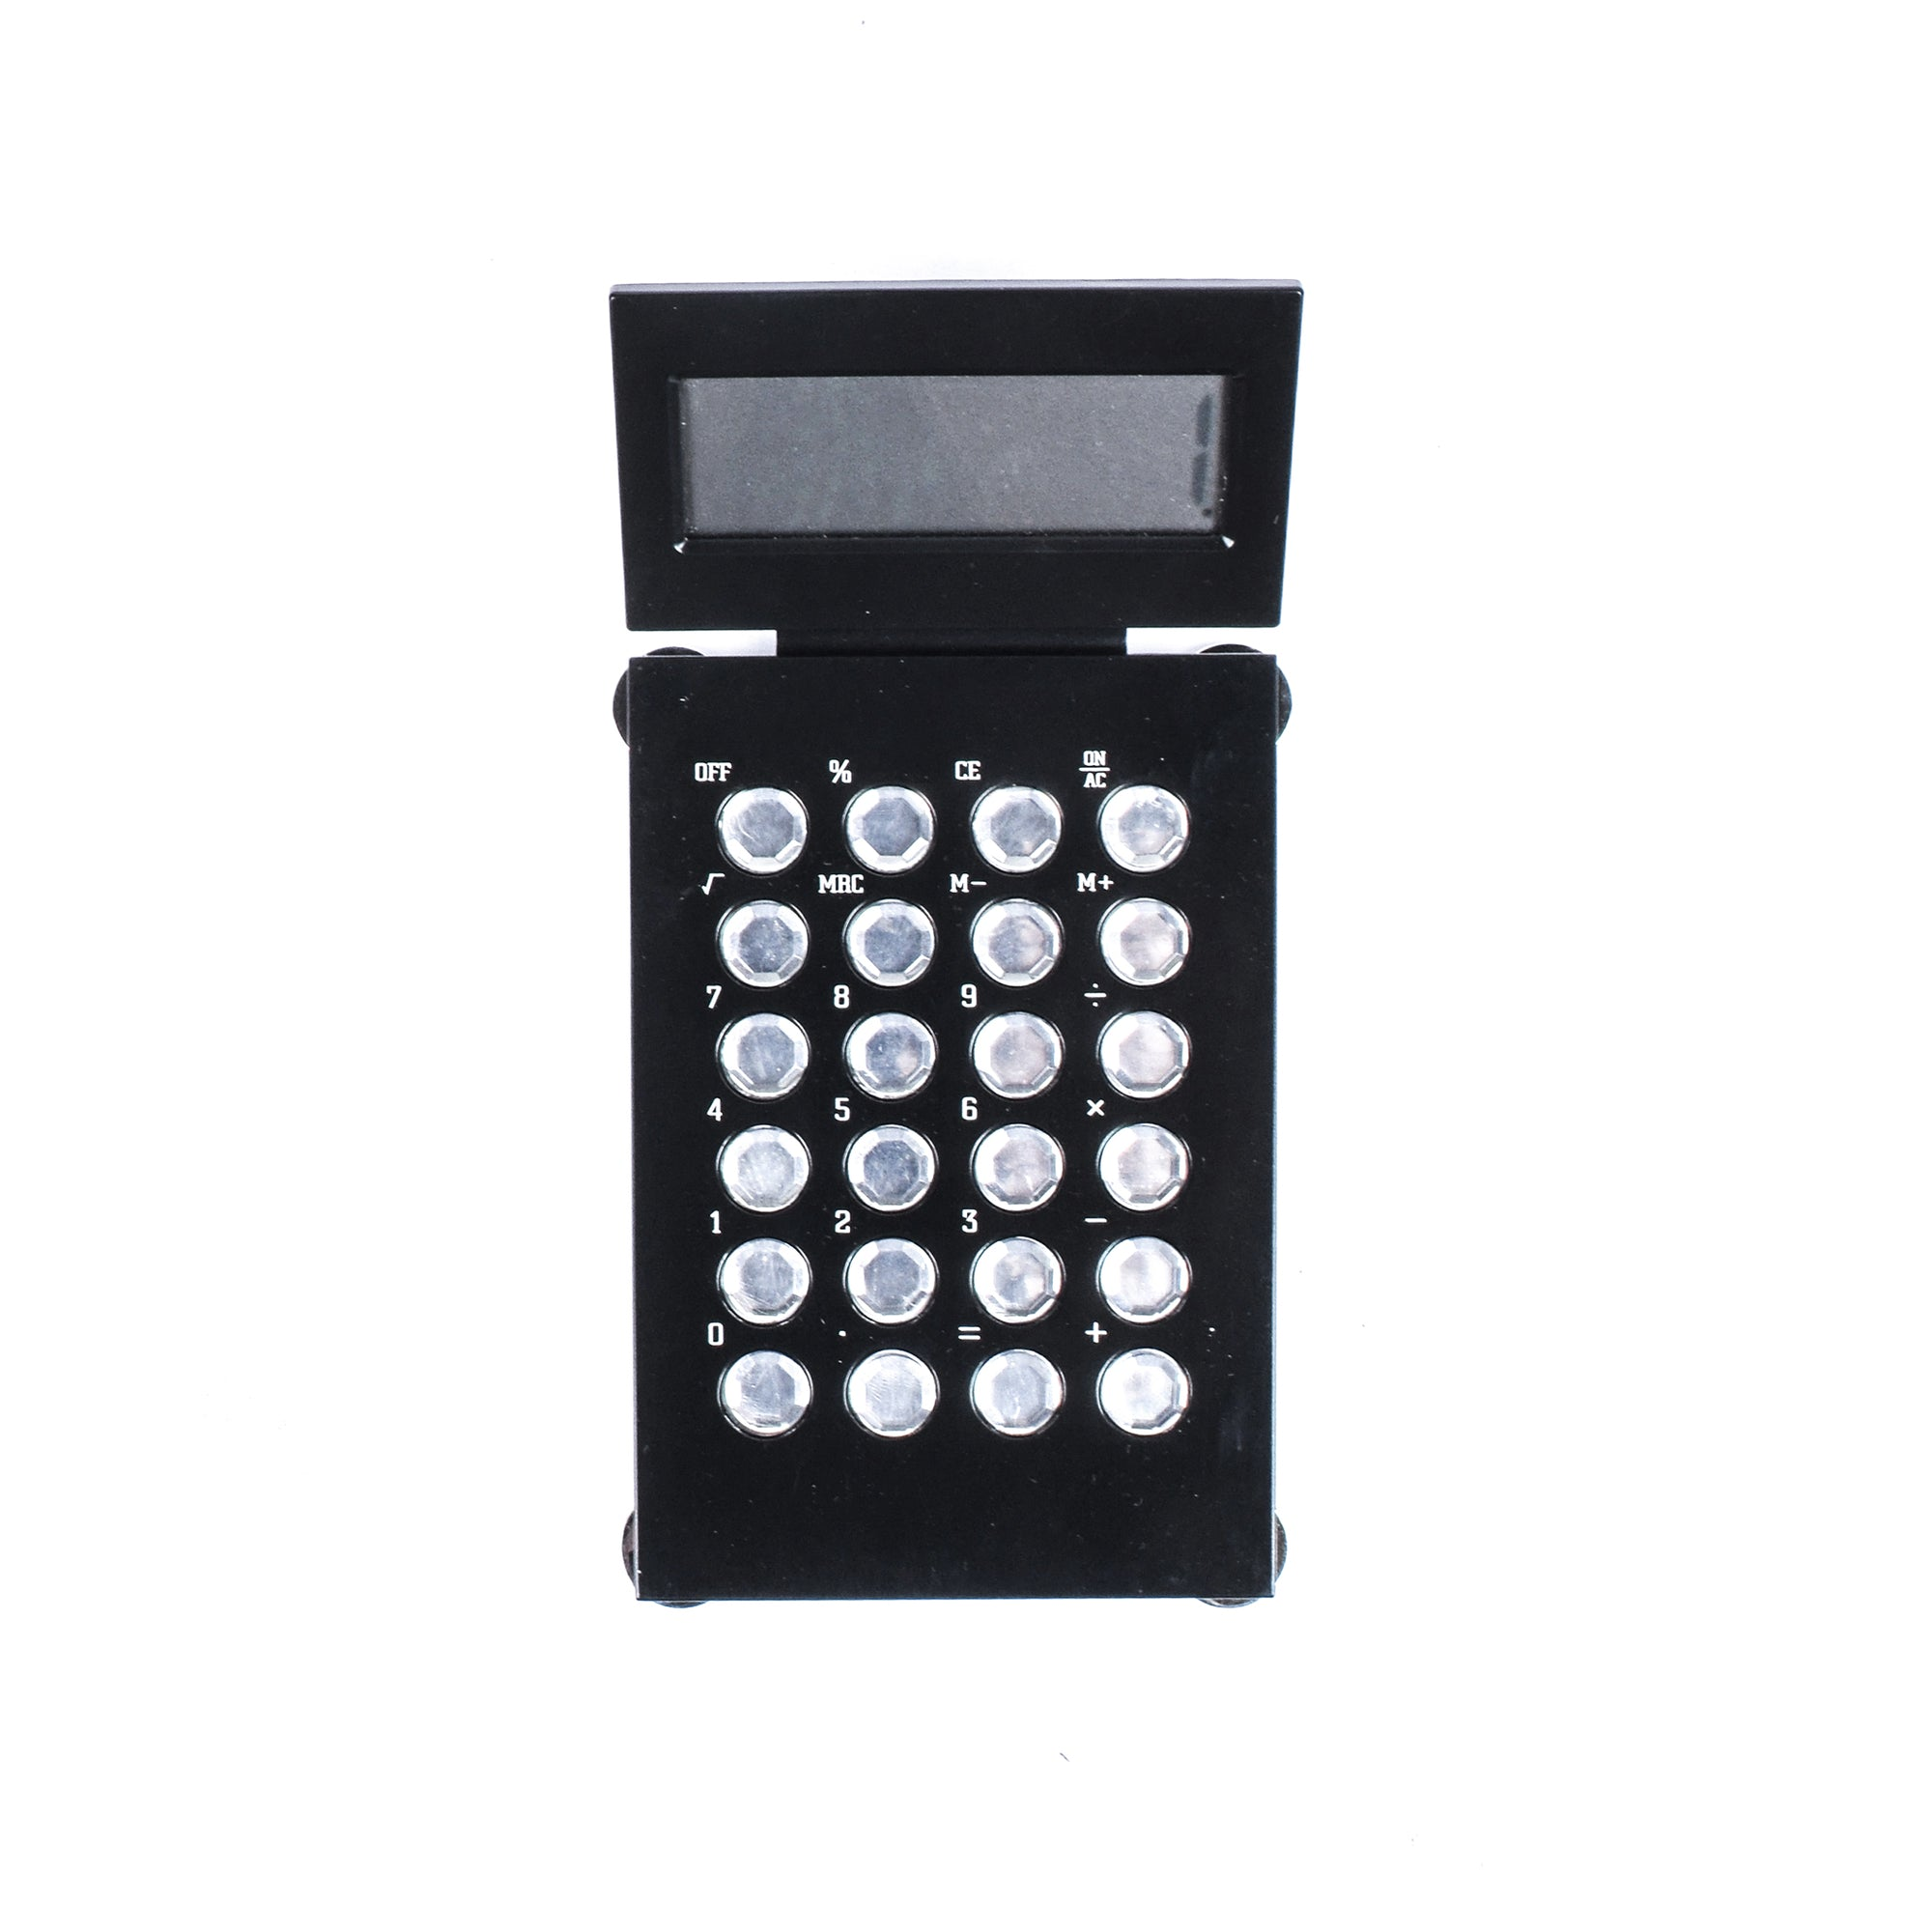 Digital Battery Operated Calculator-NA7353